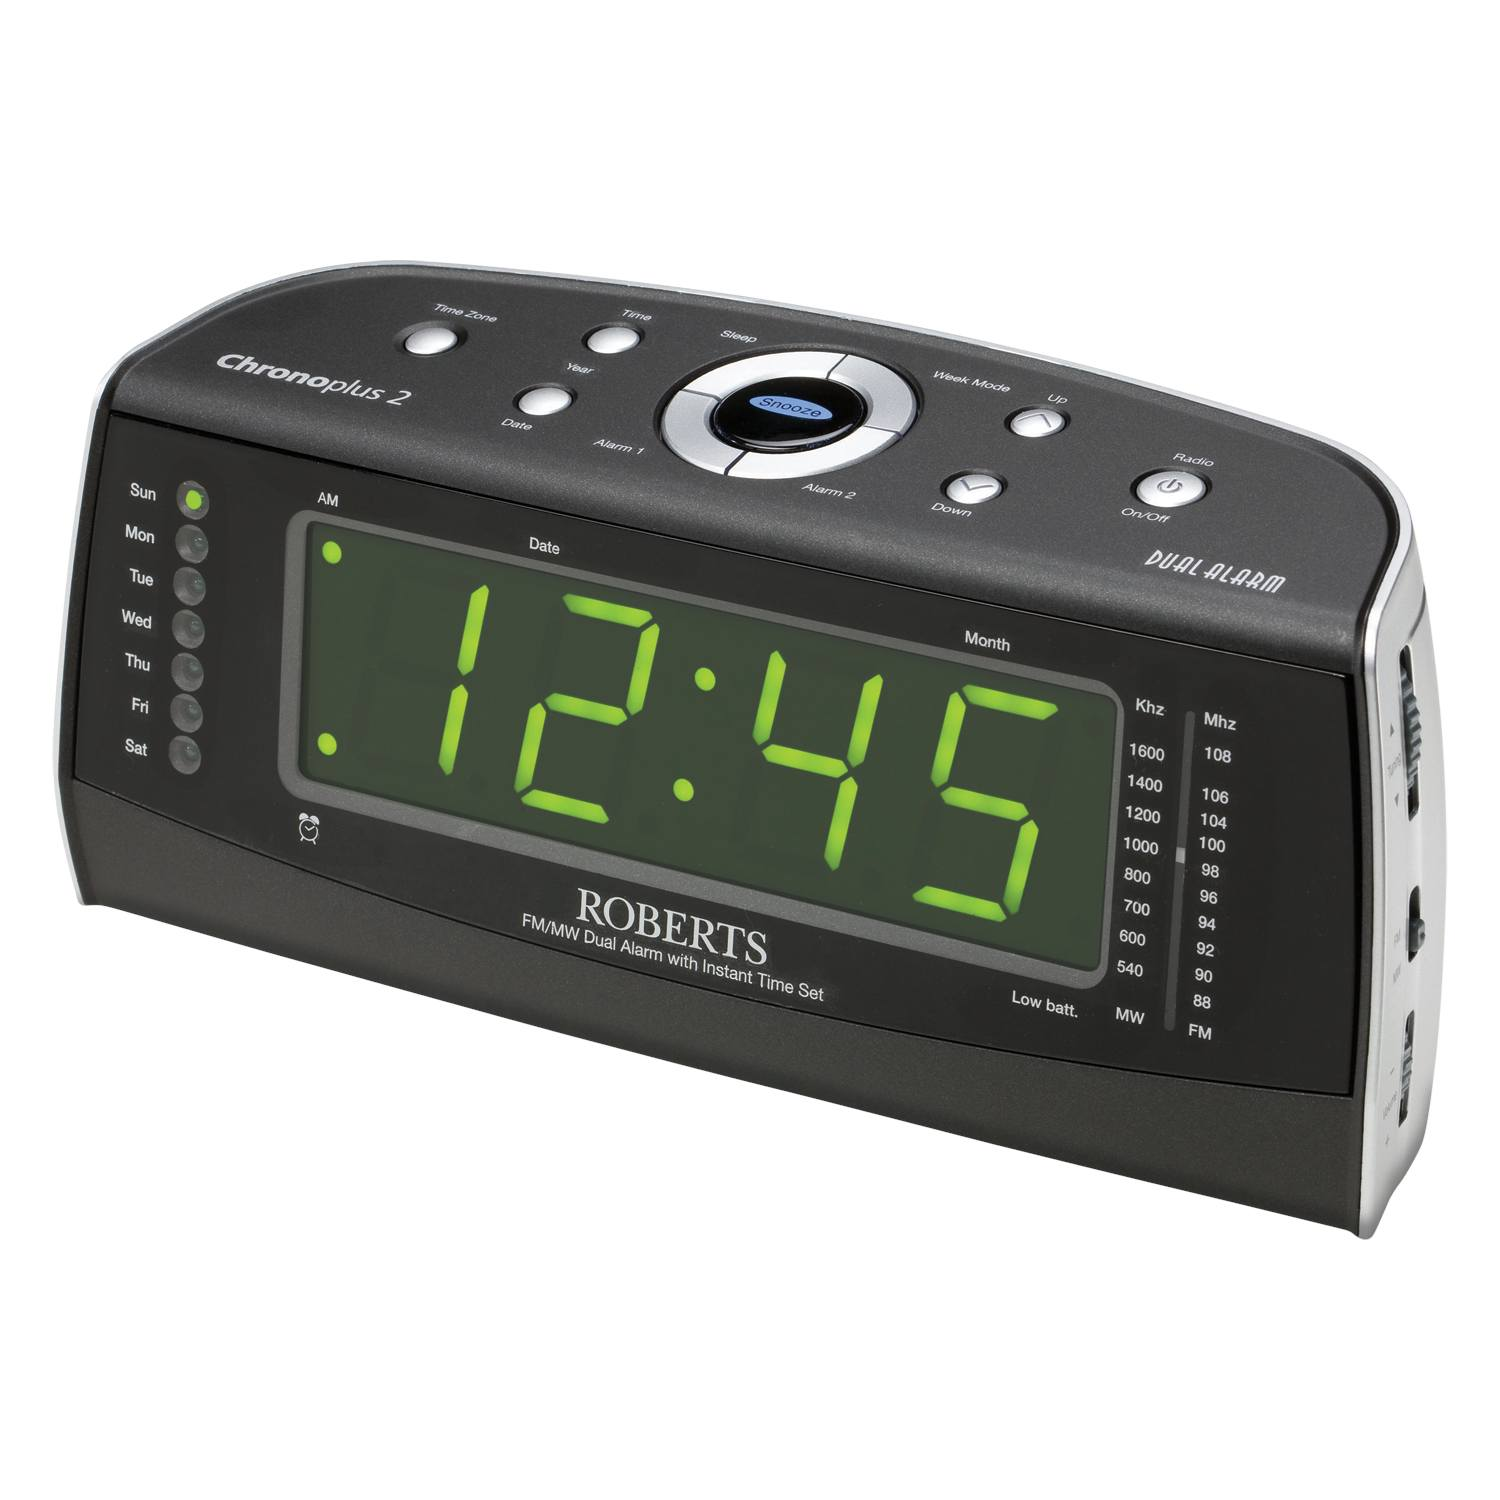 roberts chronoplus 2 black silver mw fm clock radio with dual alarm new. Black Bedroom Furniture Sets. Home Design Ideas